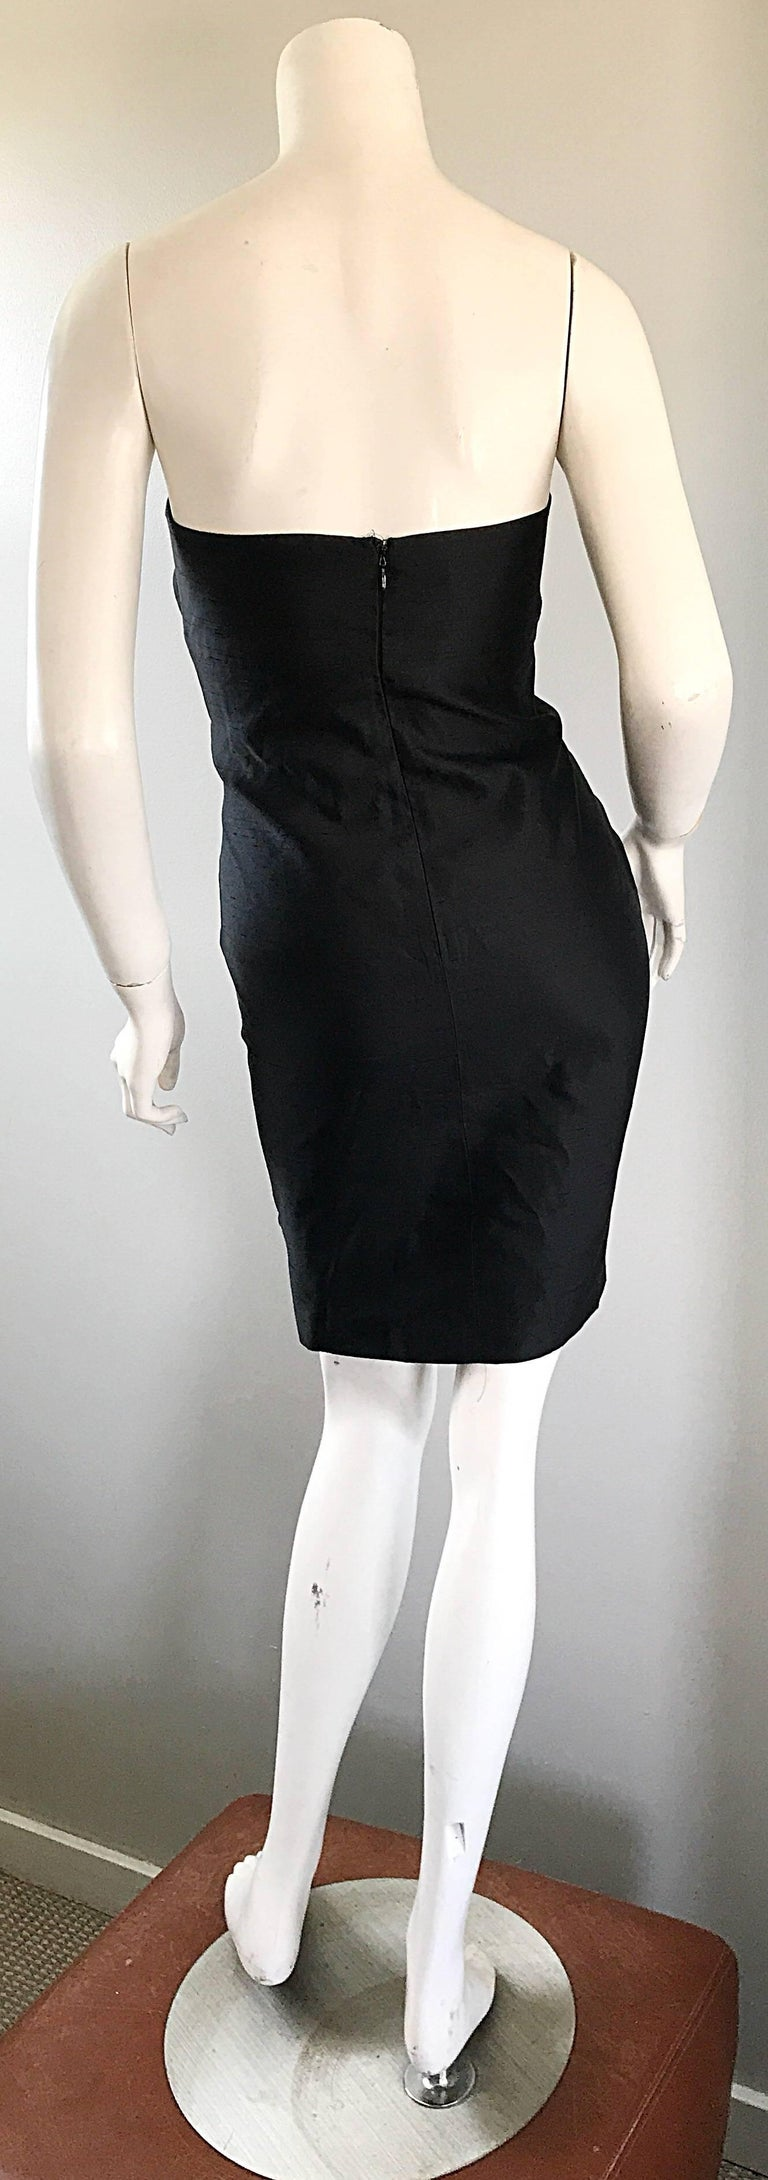 1990s Michael Kors Collection Size 2 Black Silk Shantung Strapless Vintage Dress 5